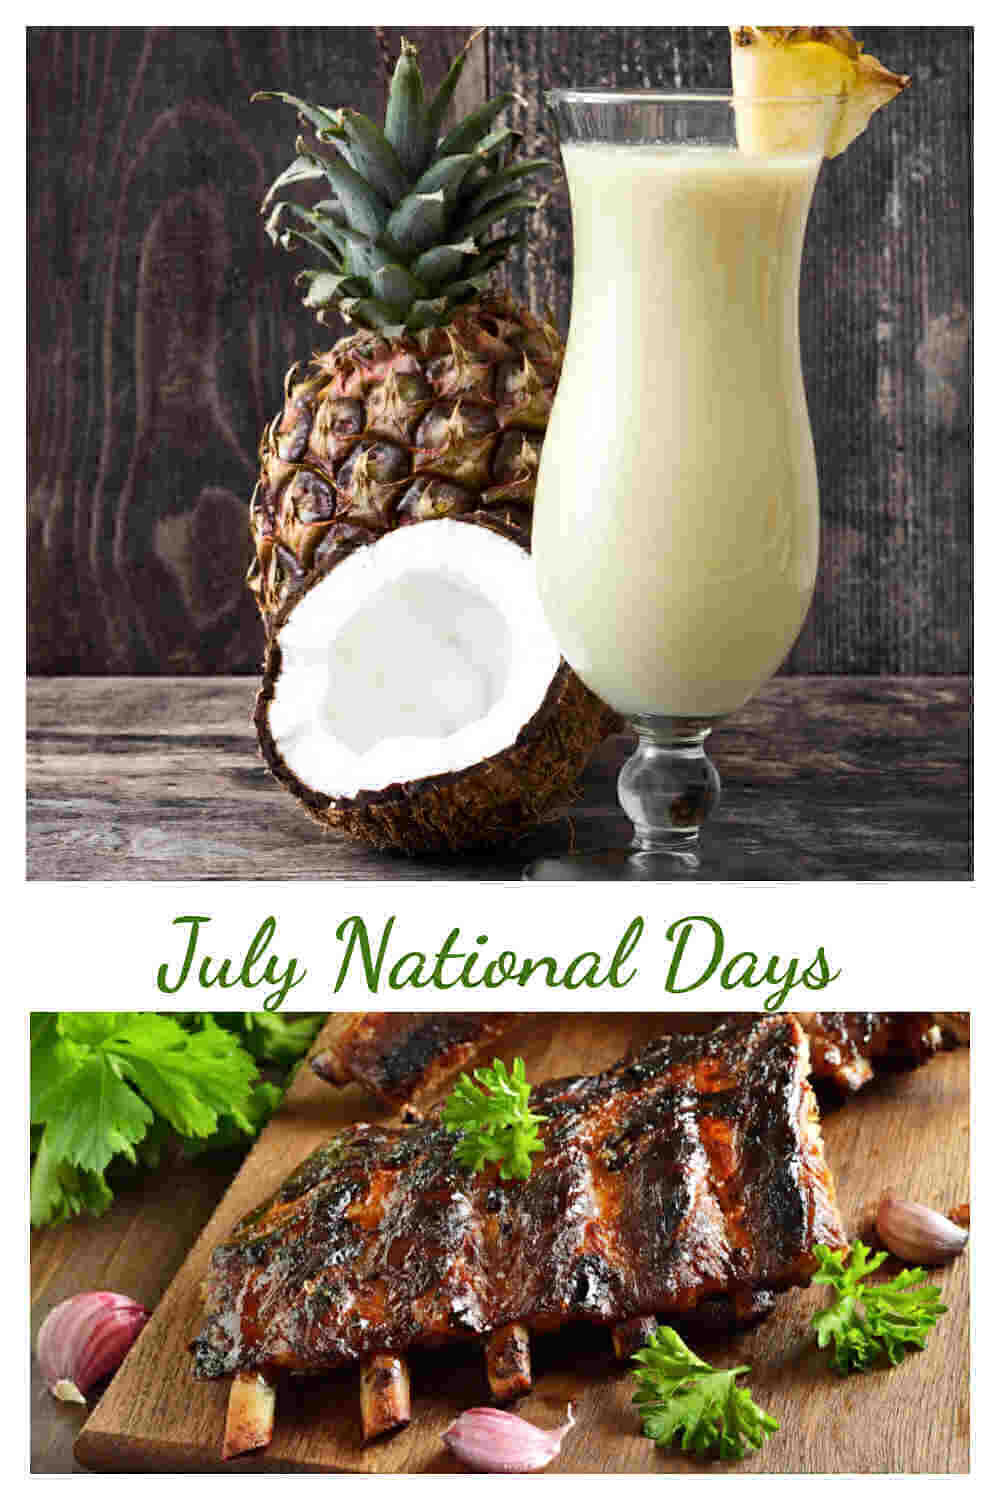 Pina colada and spare ribs in a collage with words July National Days.